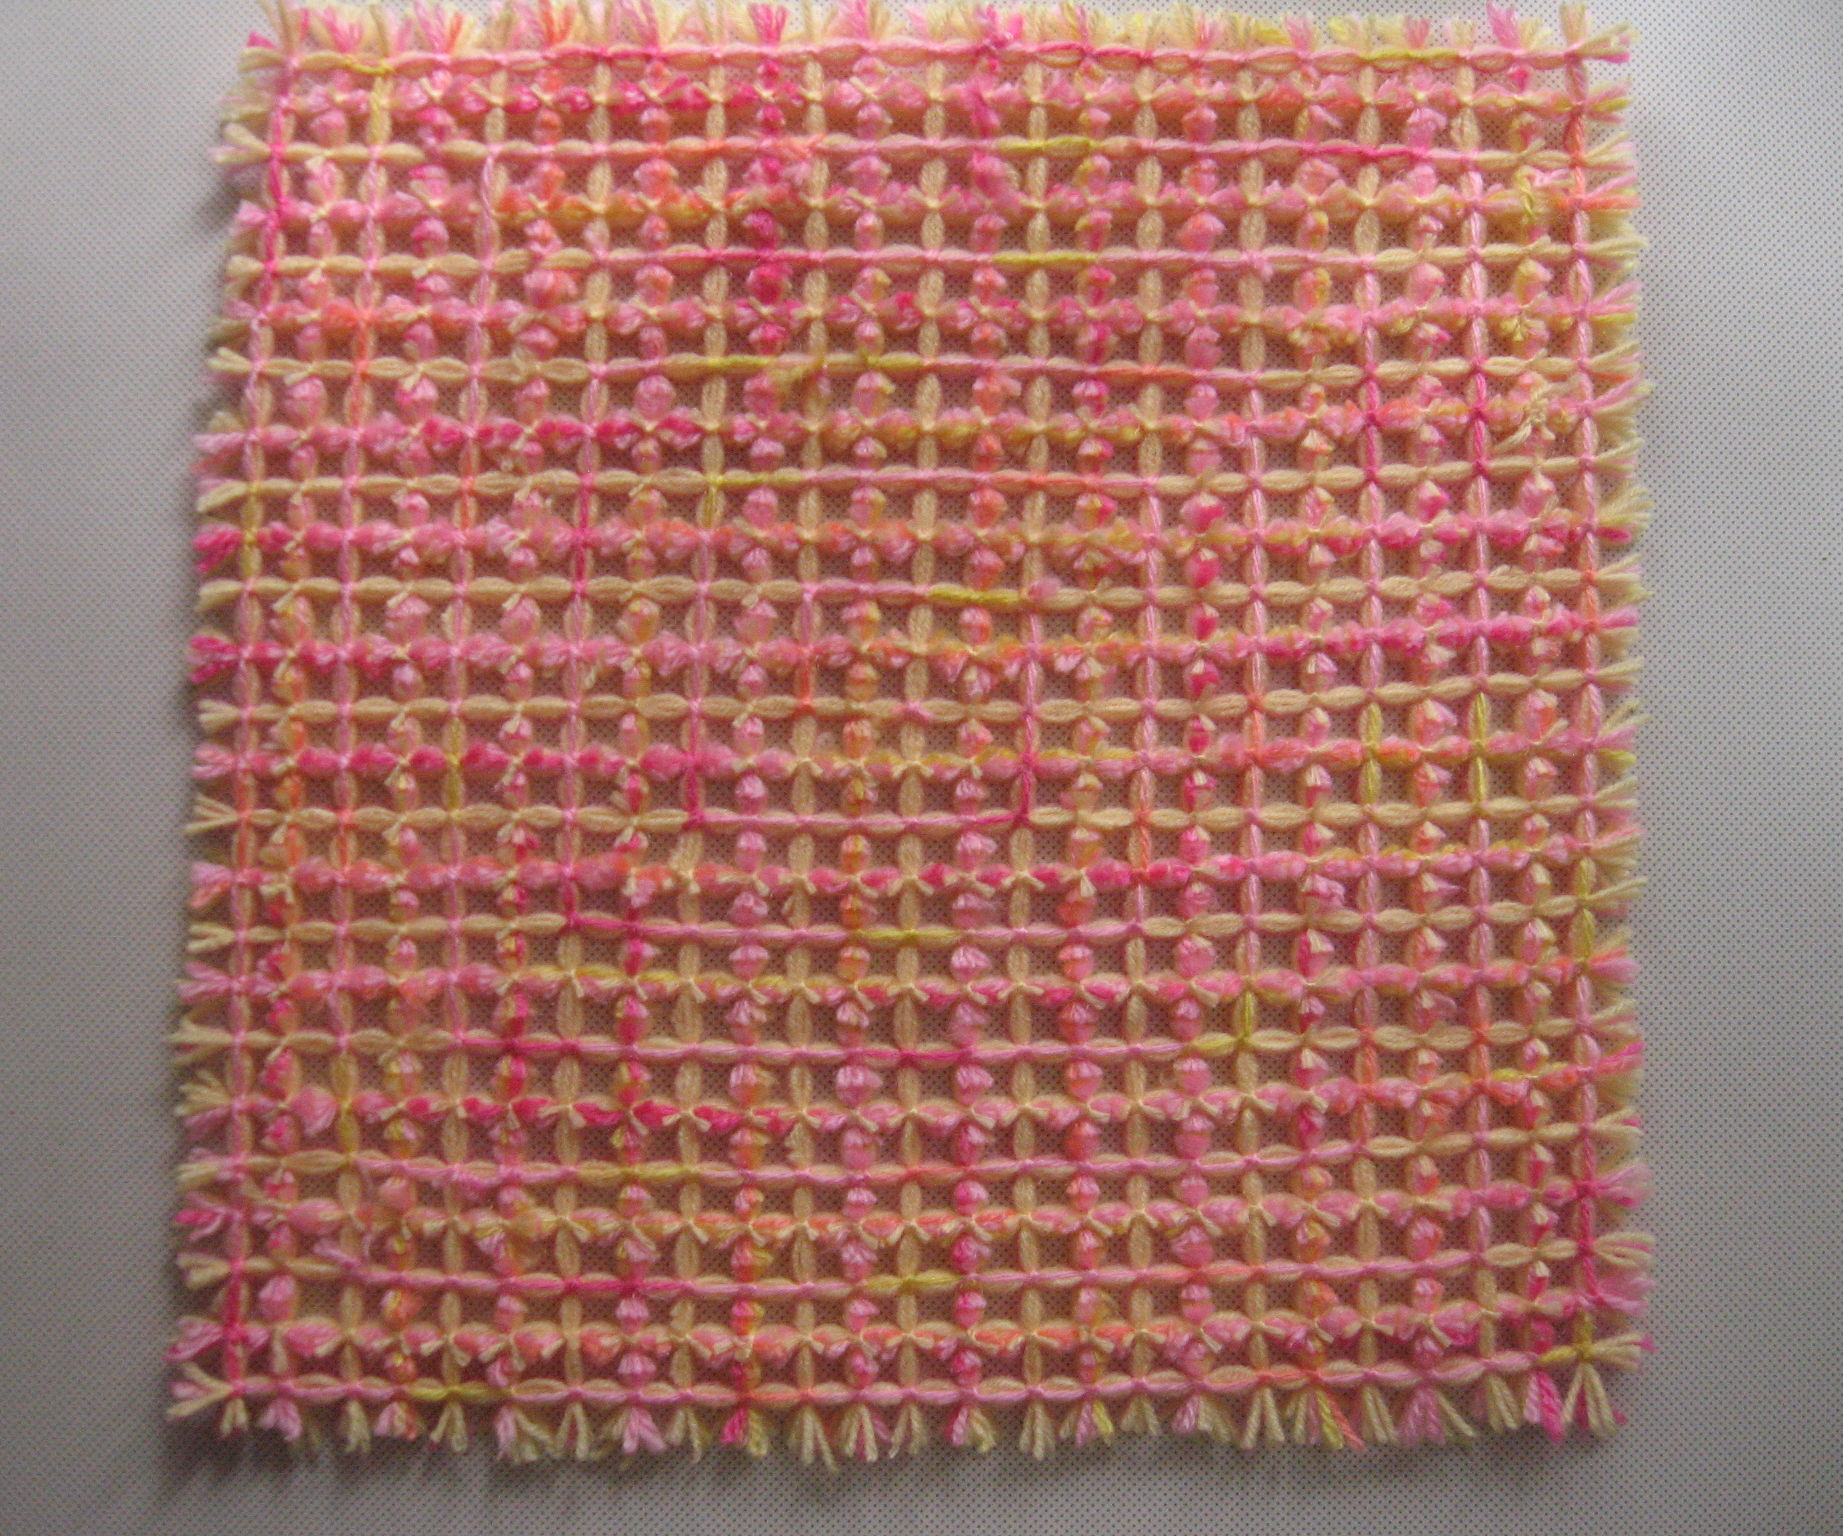 How to Weave a Mat With Small Pom Poms